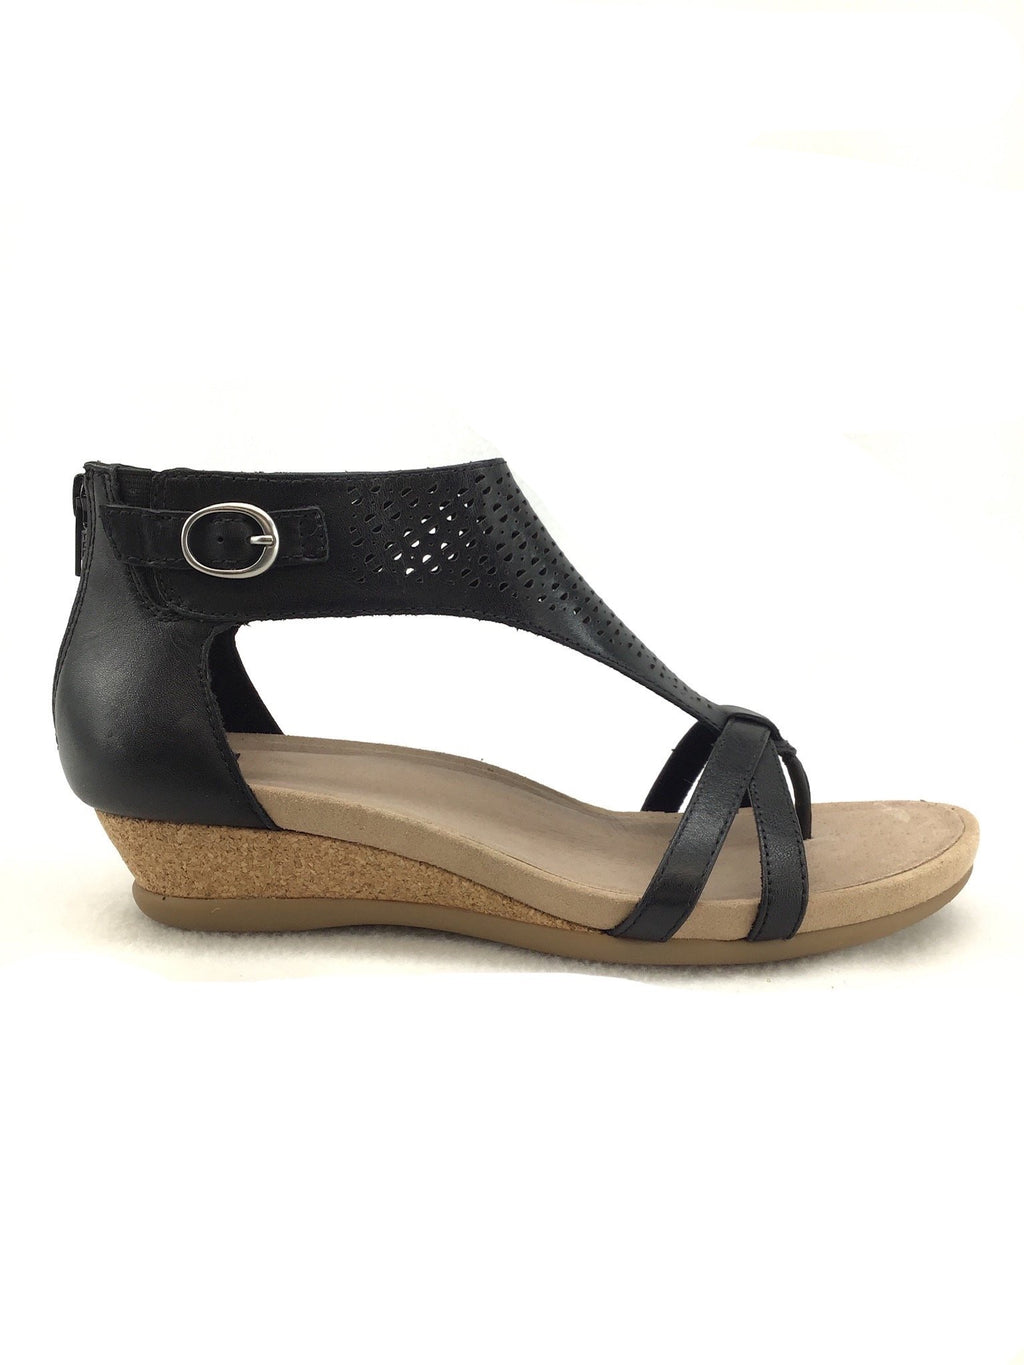 Earth Pisa Black Sandals Size 8.5M